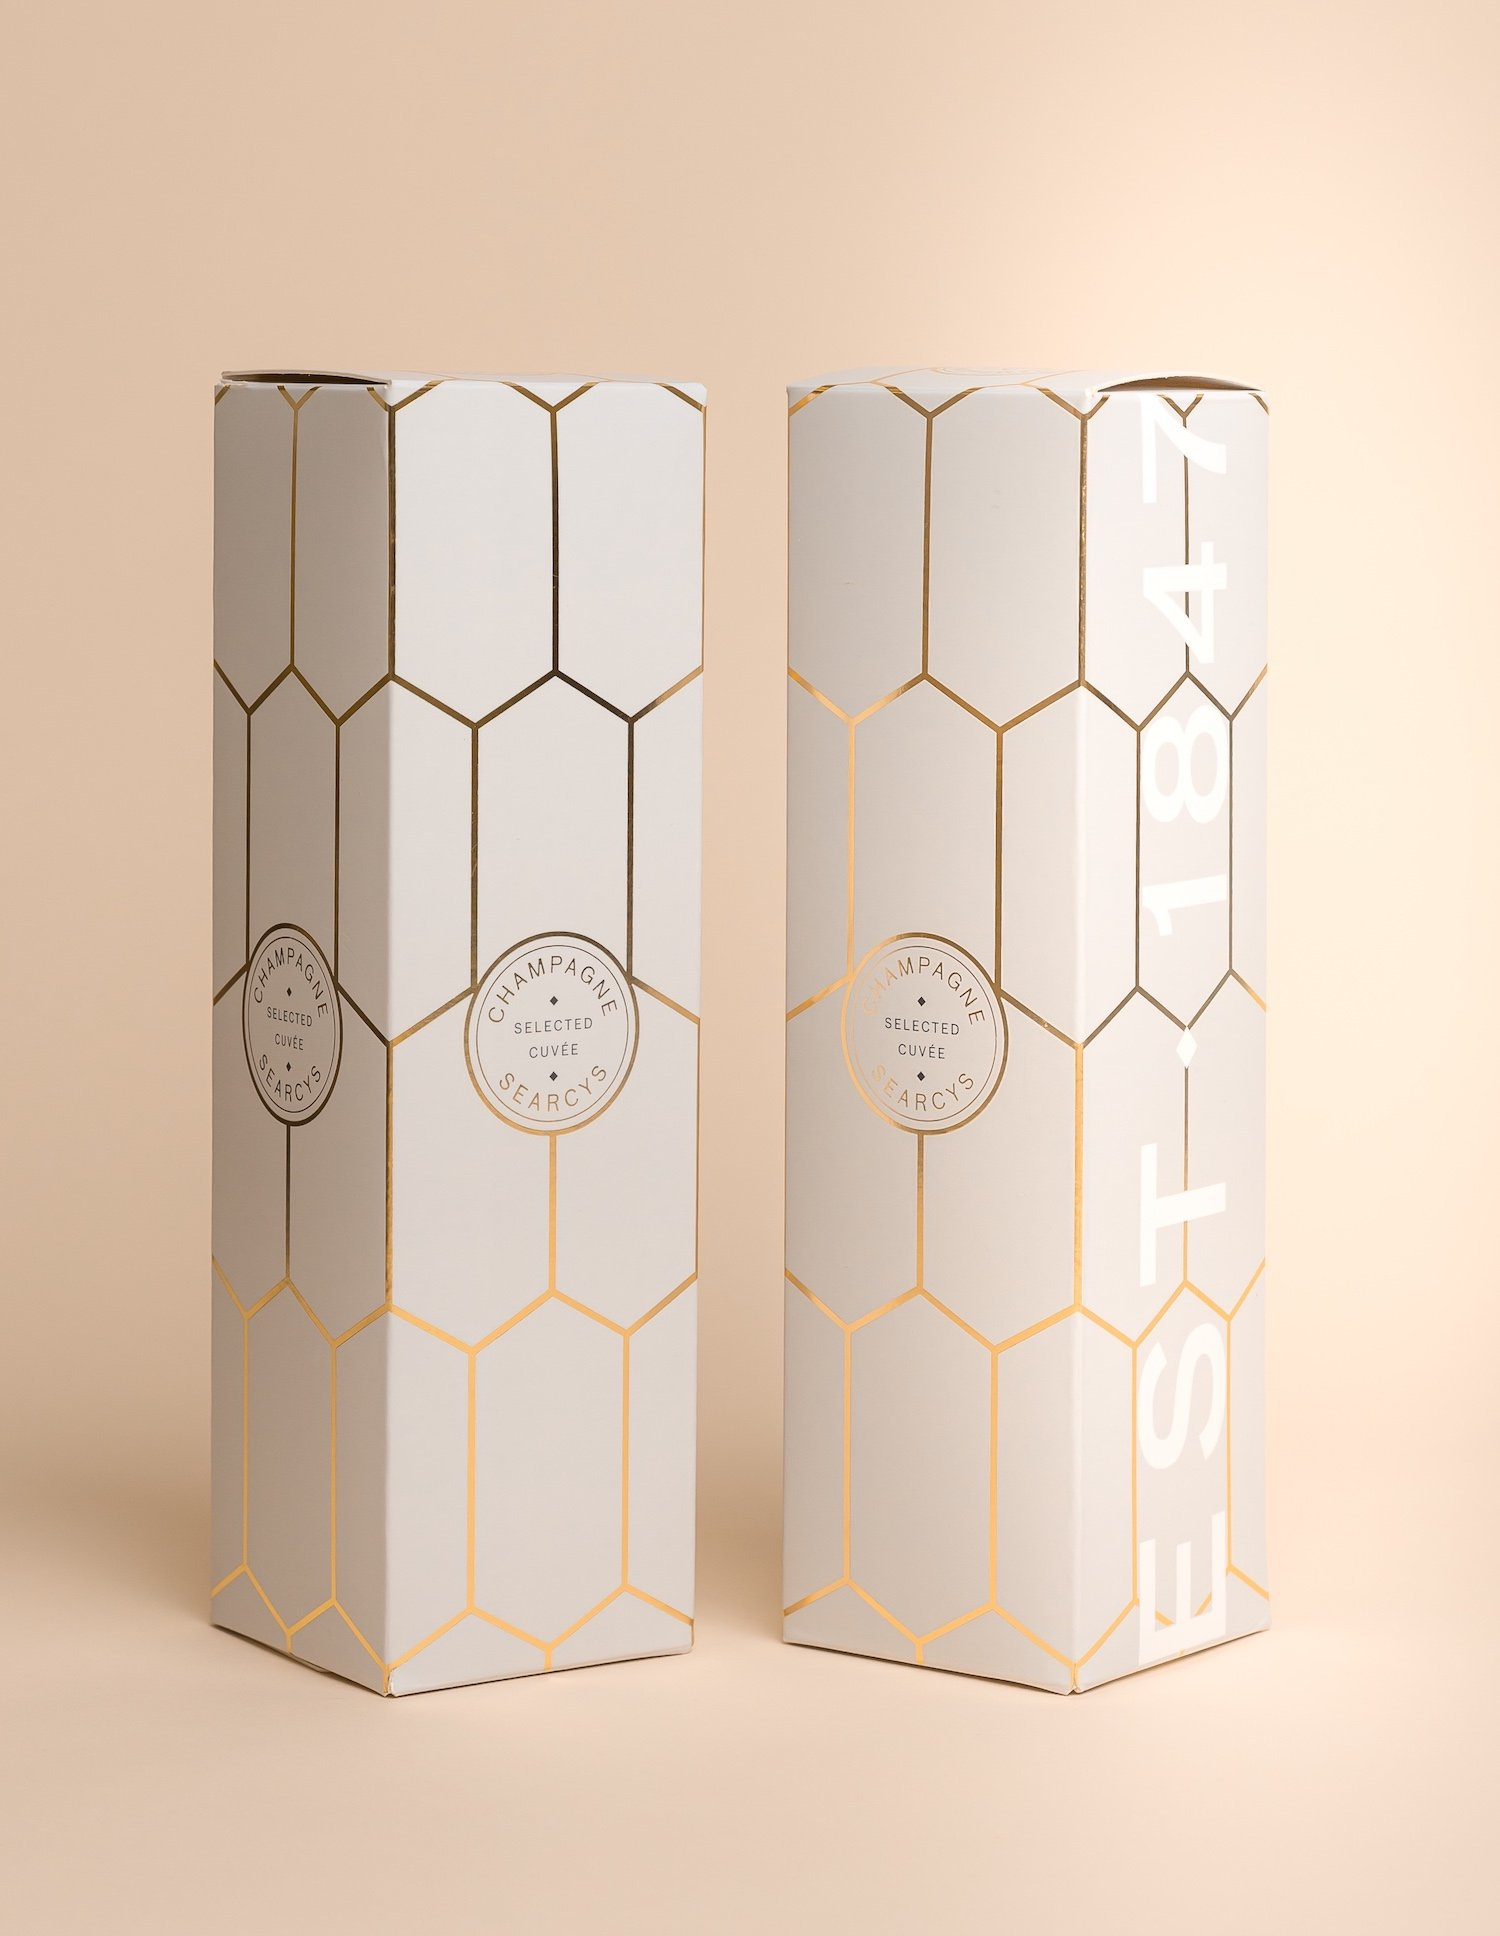 Luxury Printed Product Boxes